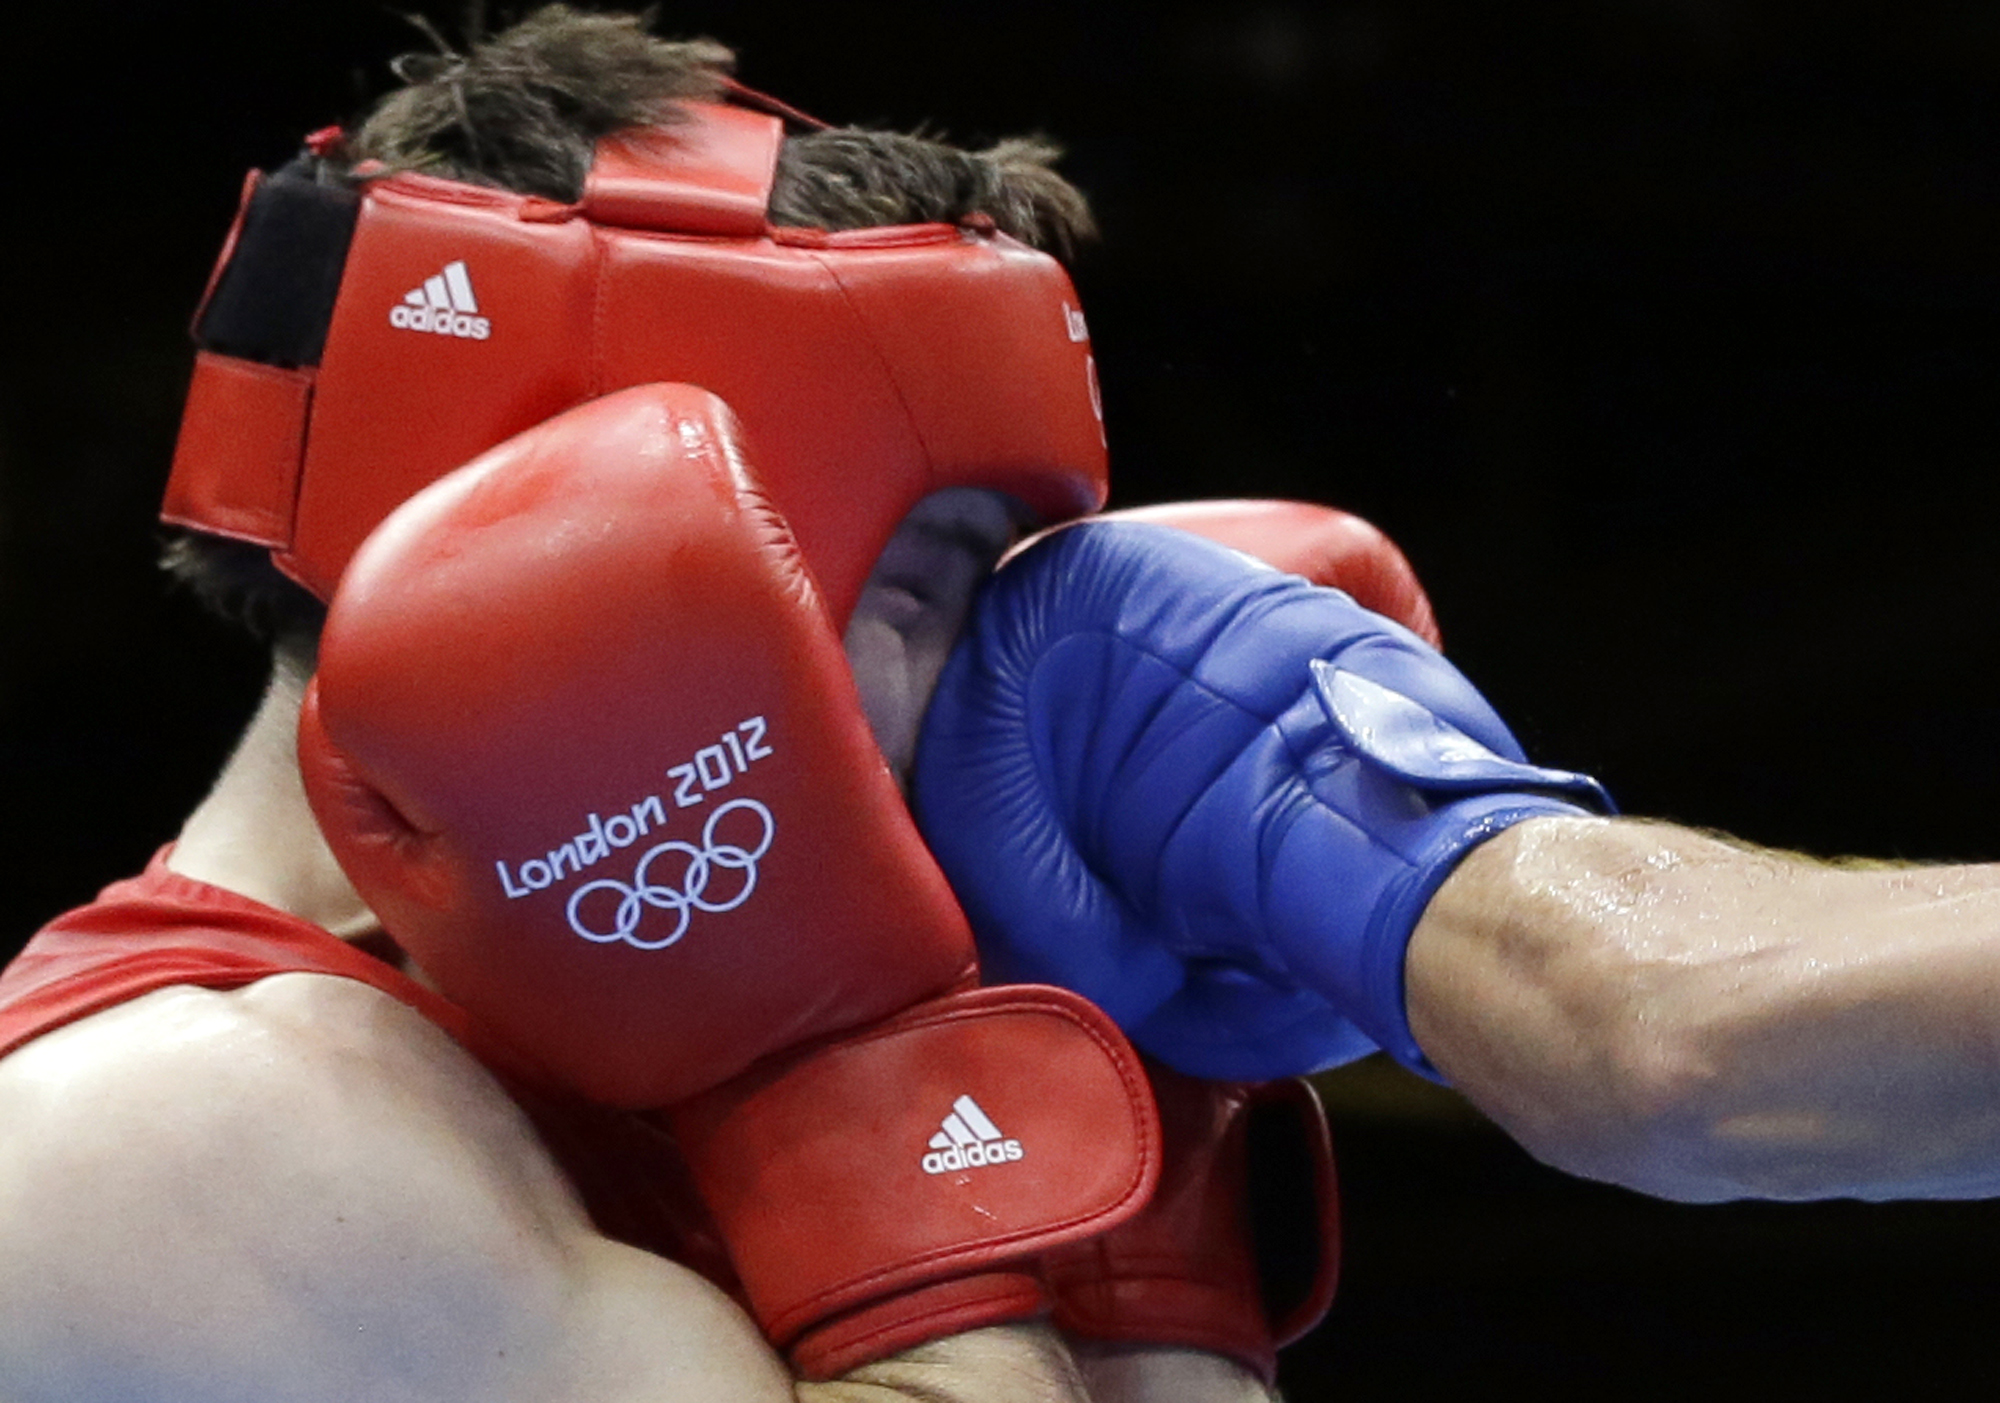 FILE- In this Aug. 12, 2012, file photo, Britain's Freddie Evans is hit by a punch from Kazakhstan's Serik Sapiyev during a welterweight 69-kg gold medal boxing match at the 2012 Summer Olympics in London. Male boxers won't be wearing protective headgear